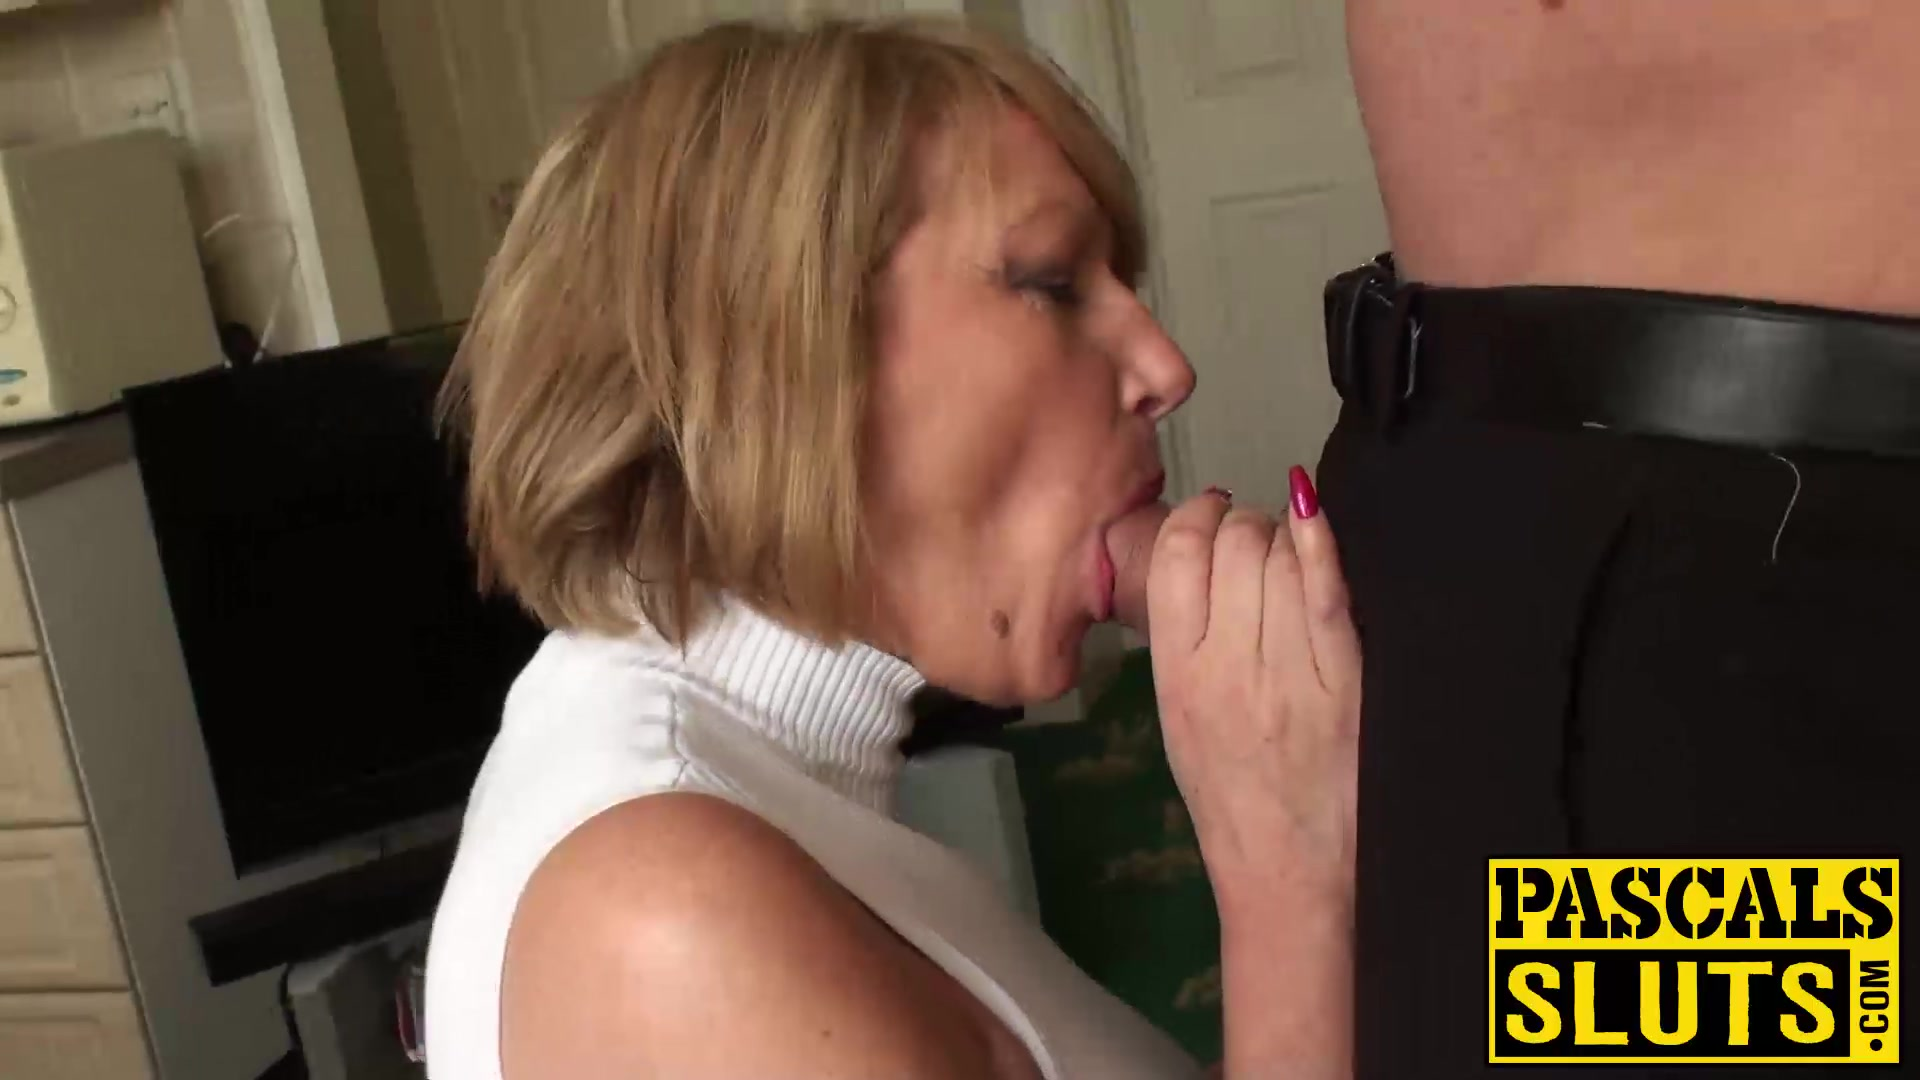 Sexy Mature Slut Amy Needs A Rough Pounding With A Big Cock-5902